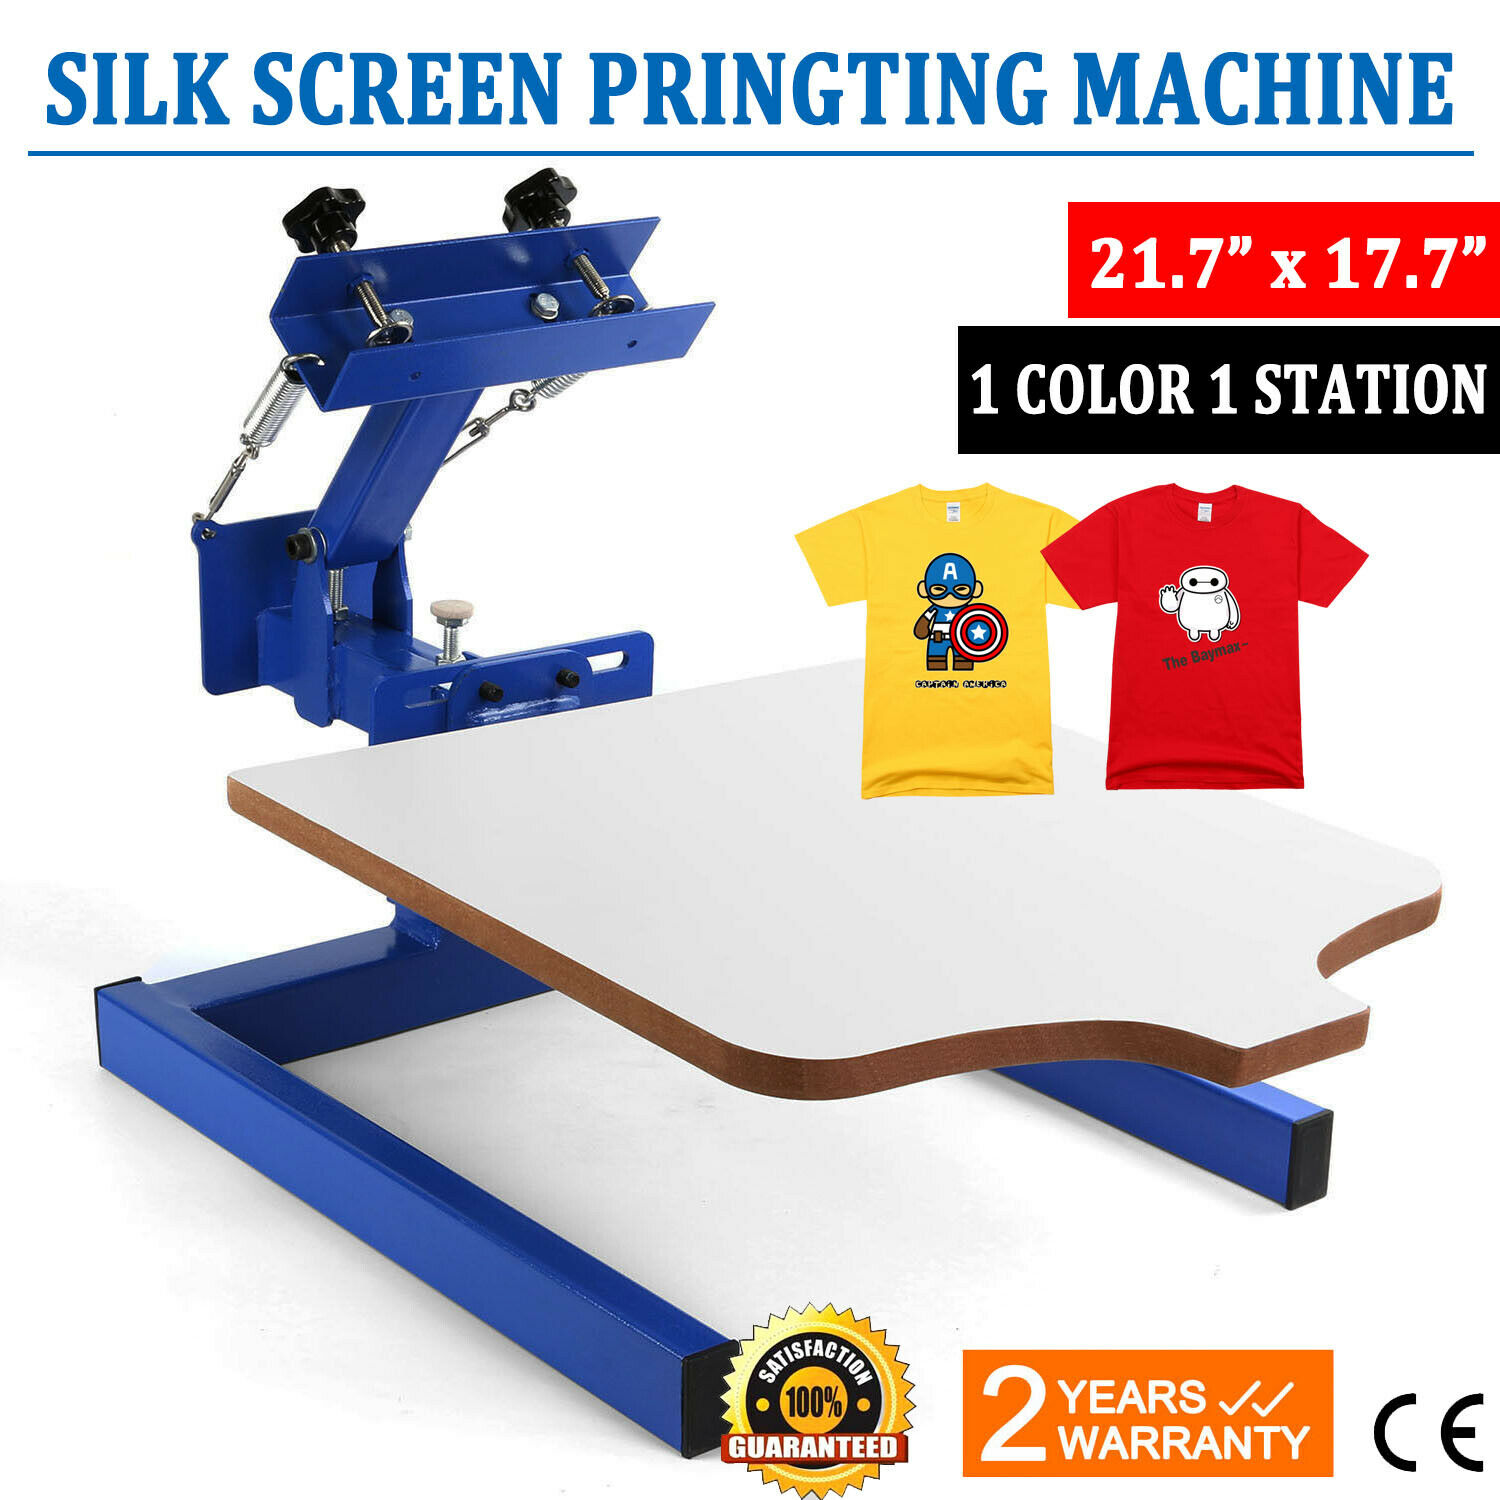 Starter Screen Printing Machine 21 Pieces kit Include Instructions GEHARTY Screen Printing Kit Made of fir,Silk Screen Printing kit Screen Printing Frame squeegees Inkjet Transparency Film and Mask